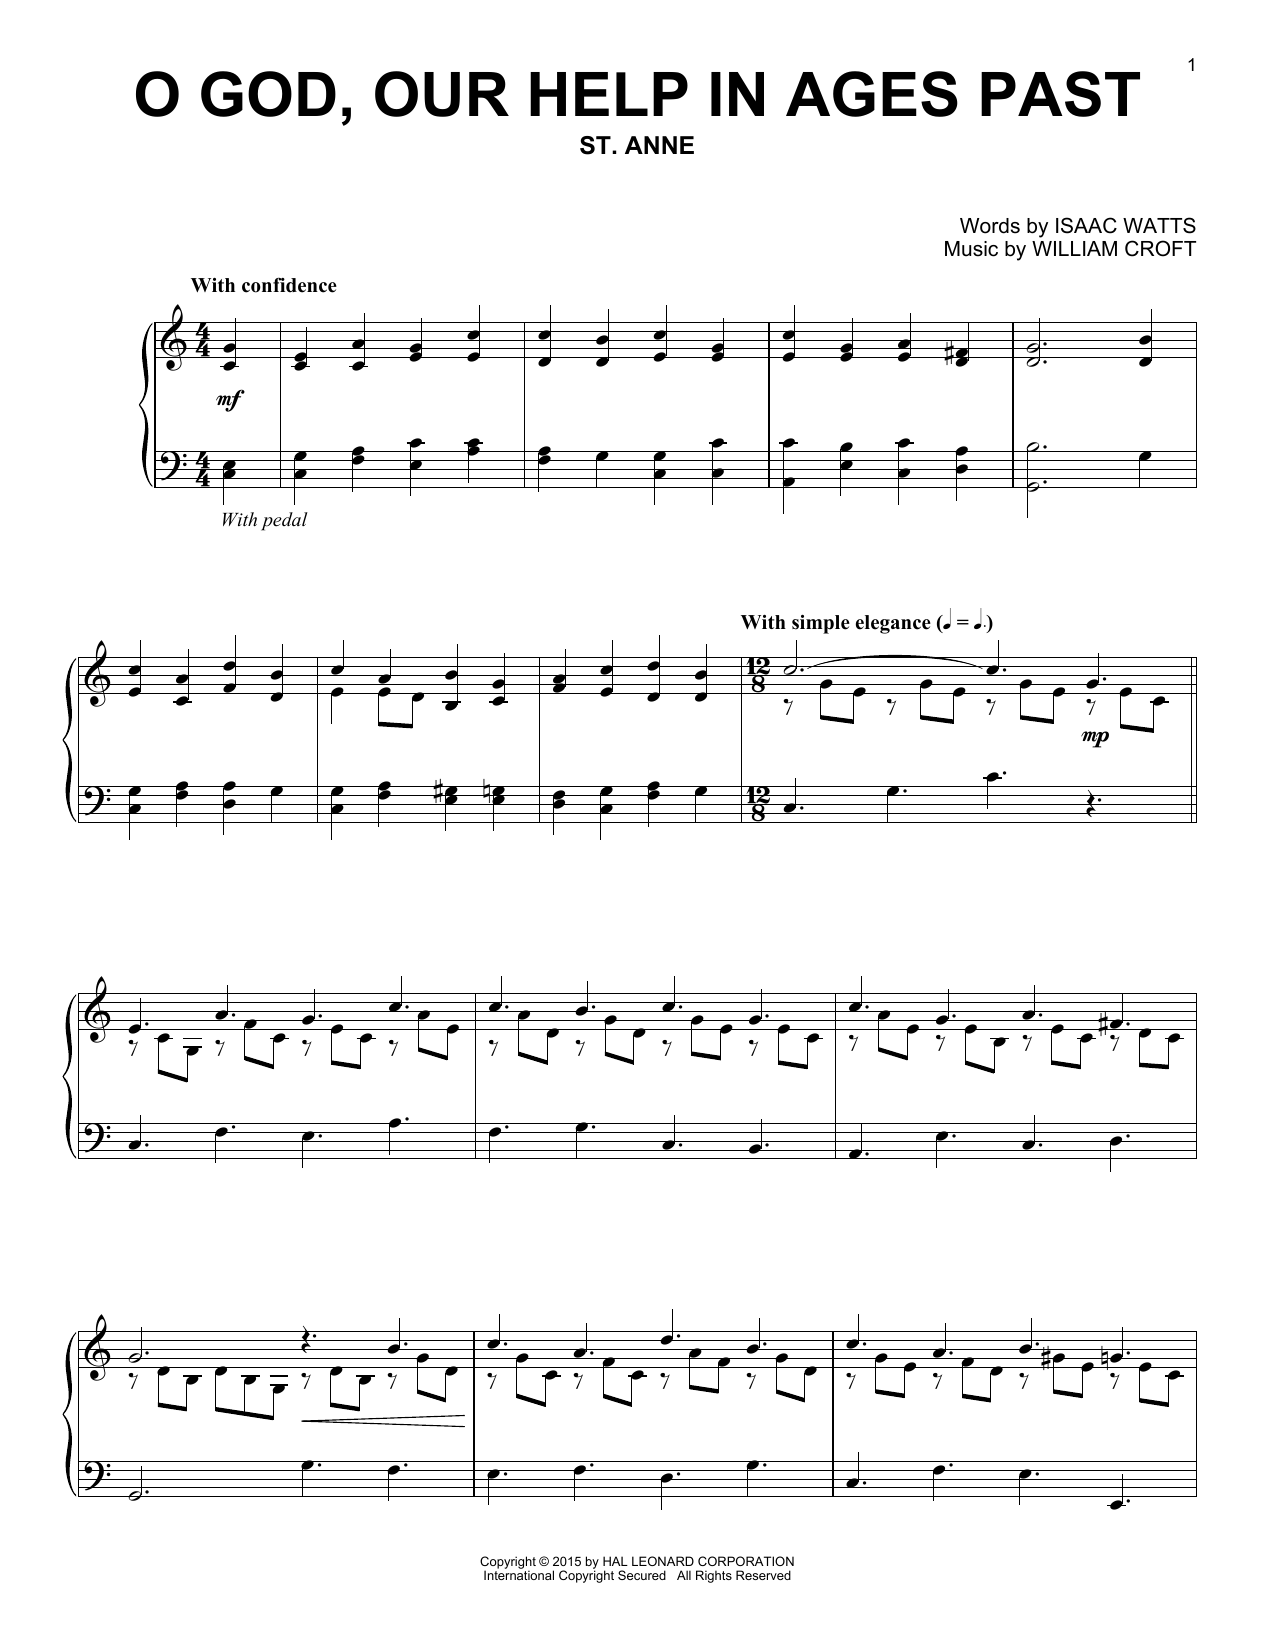 Download William Croft 'O God, Our Help In Ages Past' Digital Sheet Music Notes & Chords and start playing in minutes